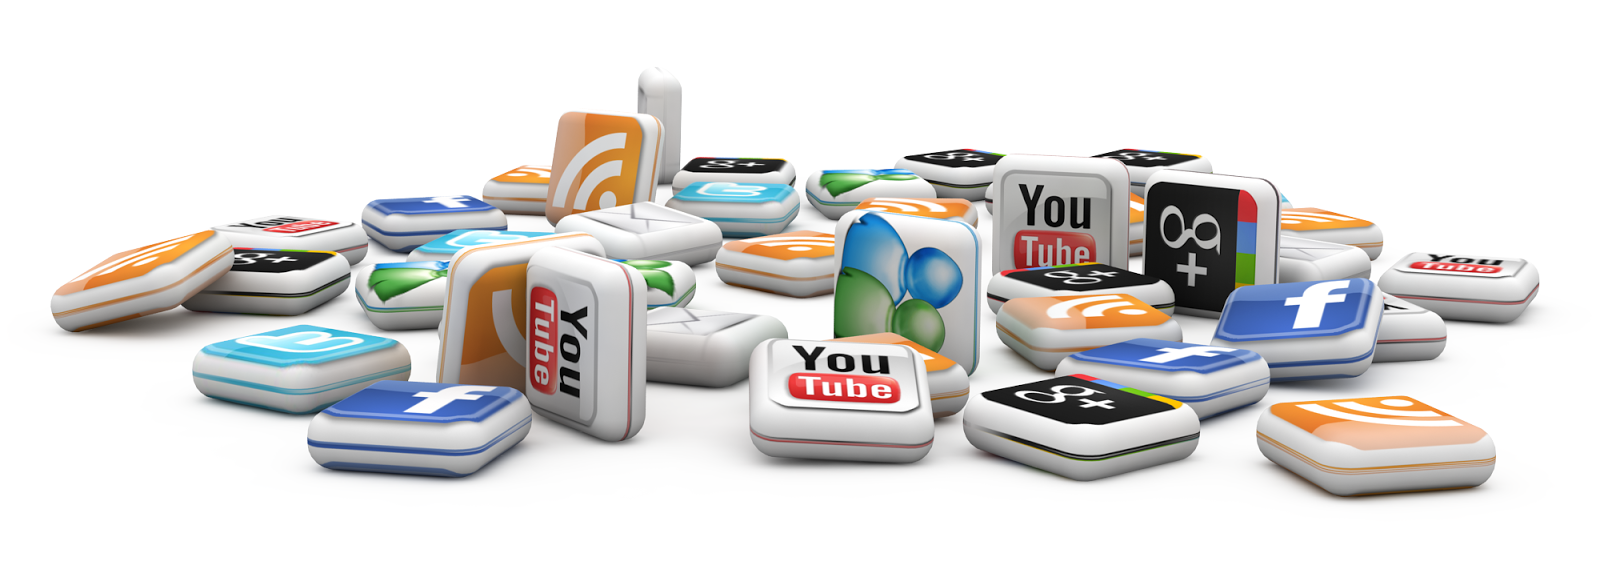 social media icons as game pieces